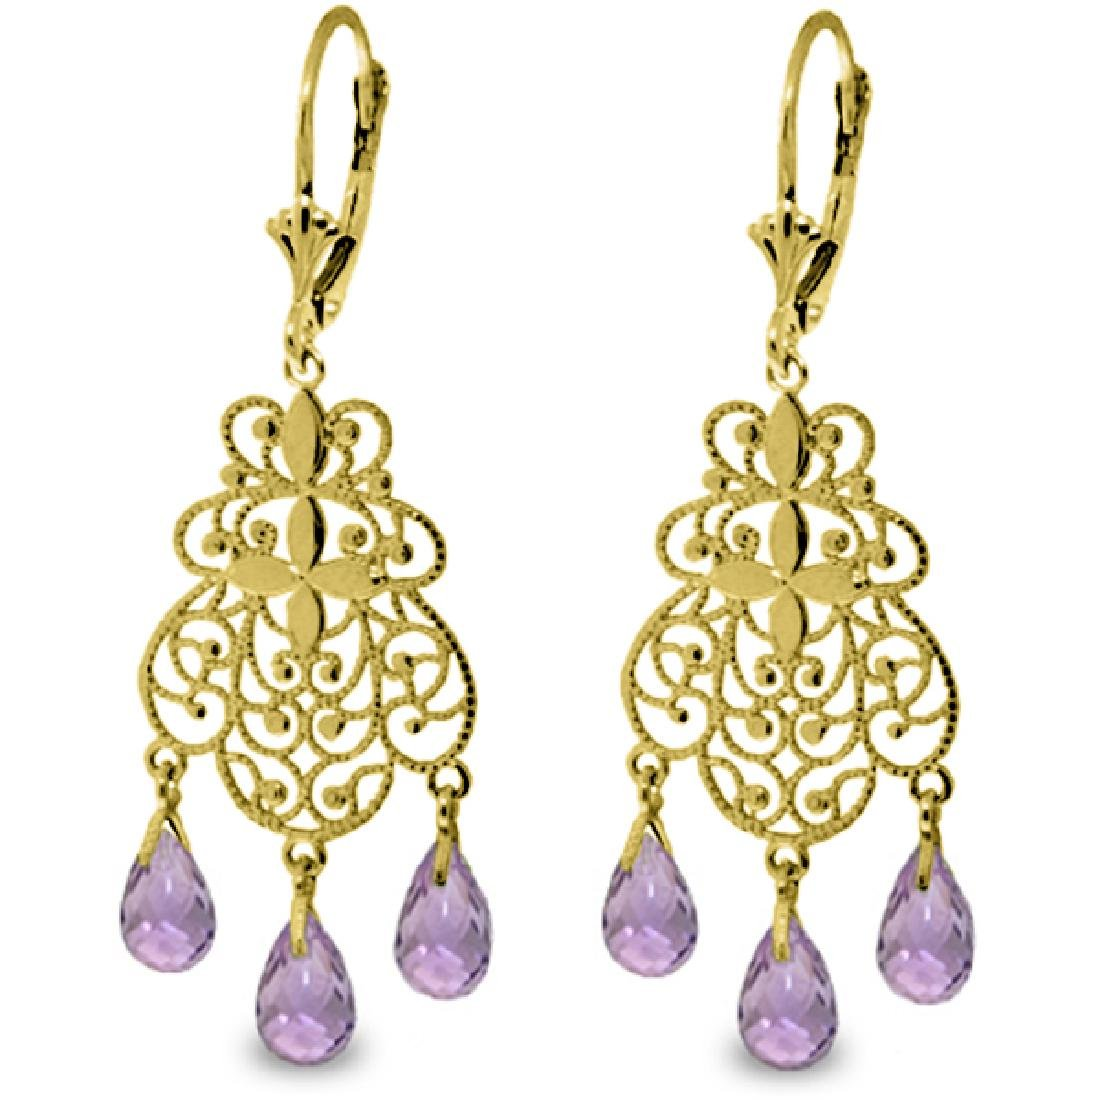 Genuine 3.75 CTW Amethyst Earrings Jewelry 14KT Yellow